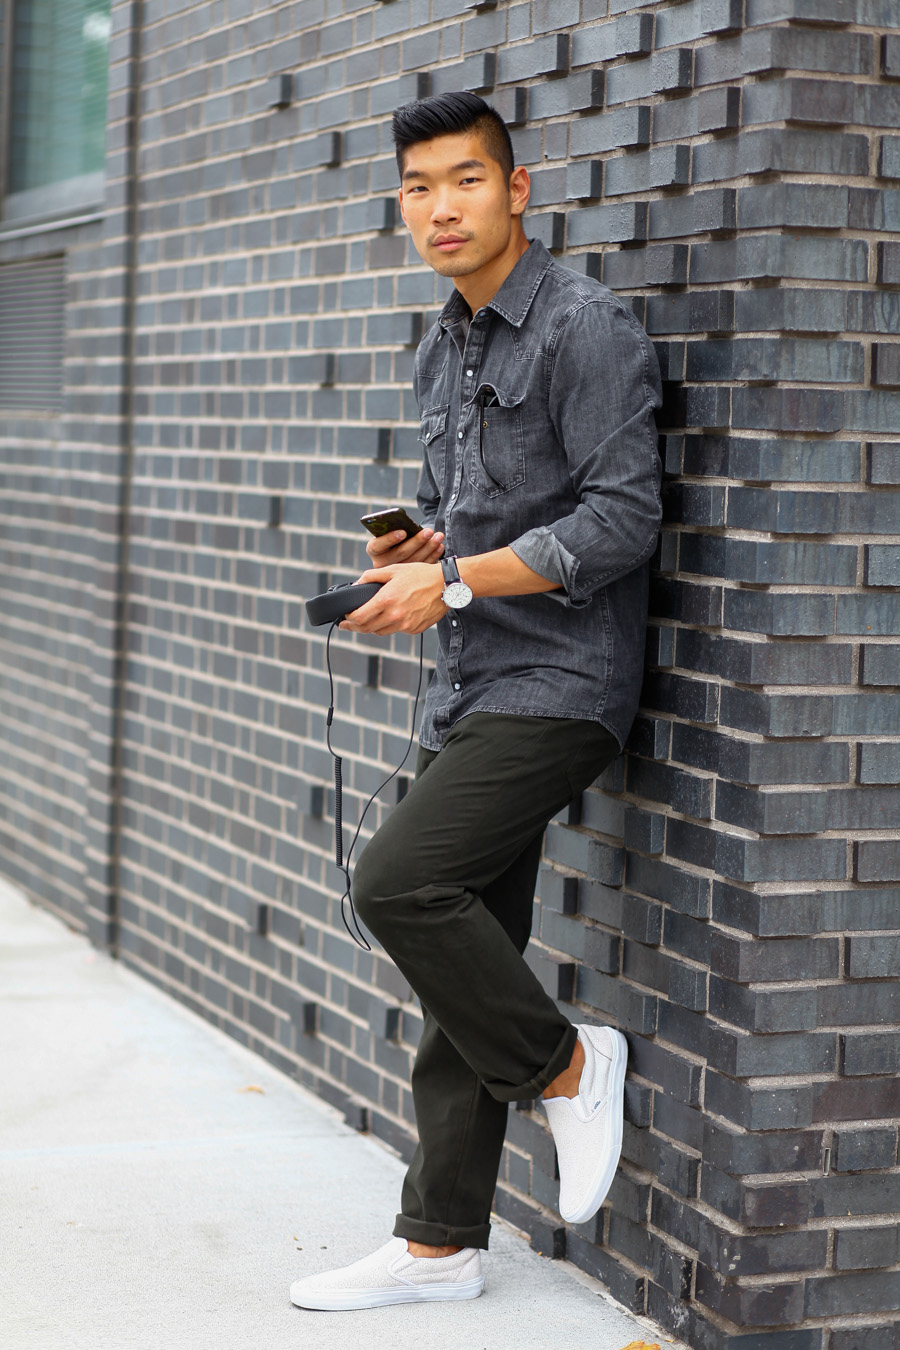 Levitate Style, Menswear, Weekend Casual Style, Big Star Denim Chambray, Mashall Headphones, Ullu phone case, Vans